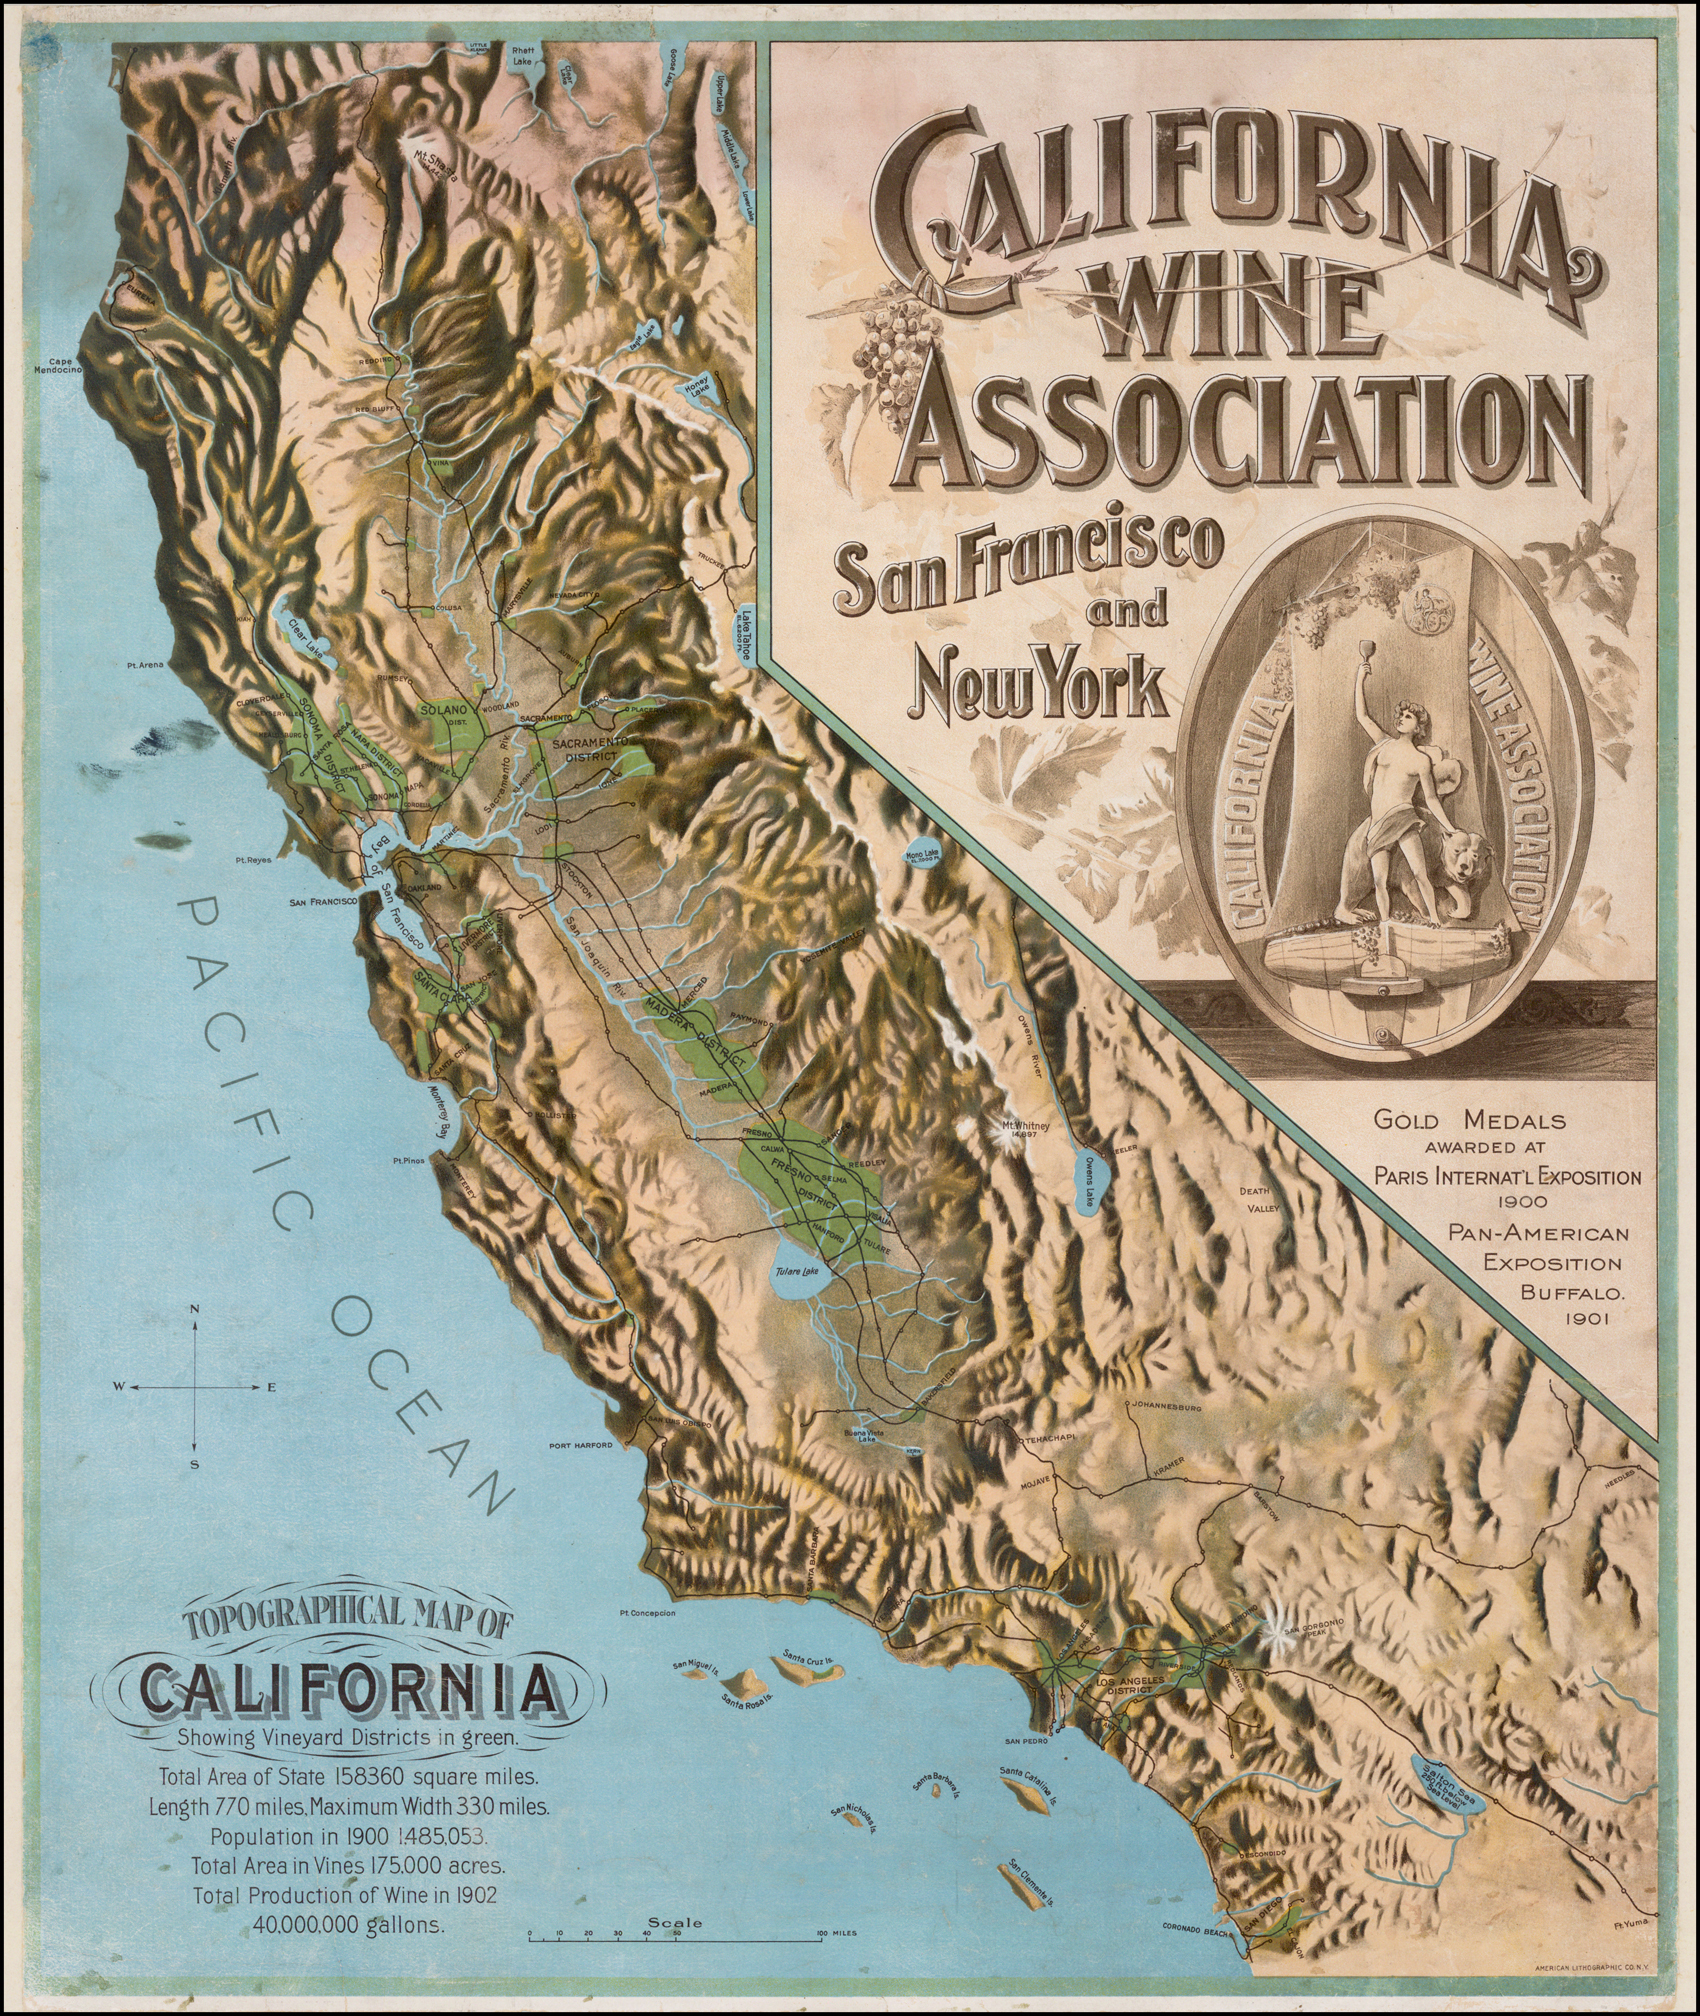 Topographical Map of California Showing Vineyard Districts ... on california theater map, california vineyards map, california brewery map, california ava map, california rice map, california california map, california religion map, california wealth map, california love map, lodi california map, anderson valley california map, 6 regions of california map, vintage california map, california wildlife map, california red map, california tax map, california drought satellite comparison, cute california map, california nautical map, santa rita hills california map,